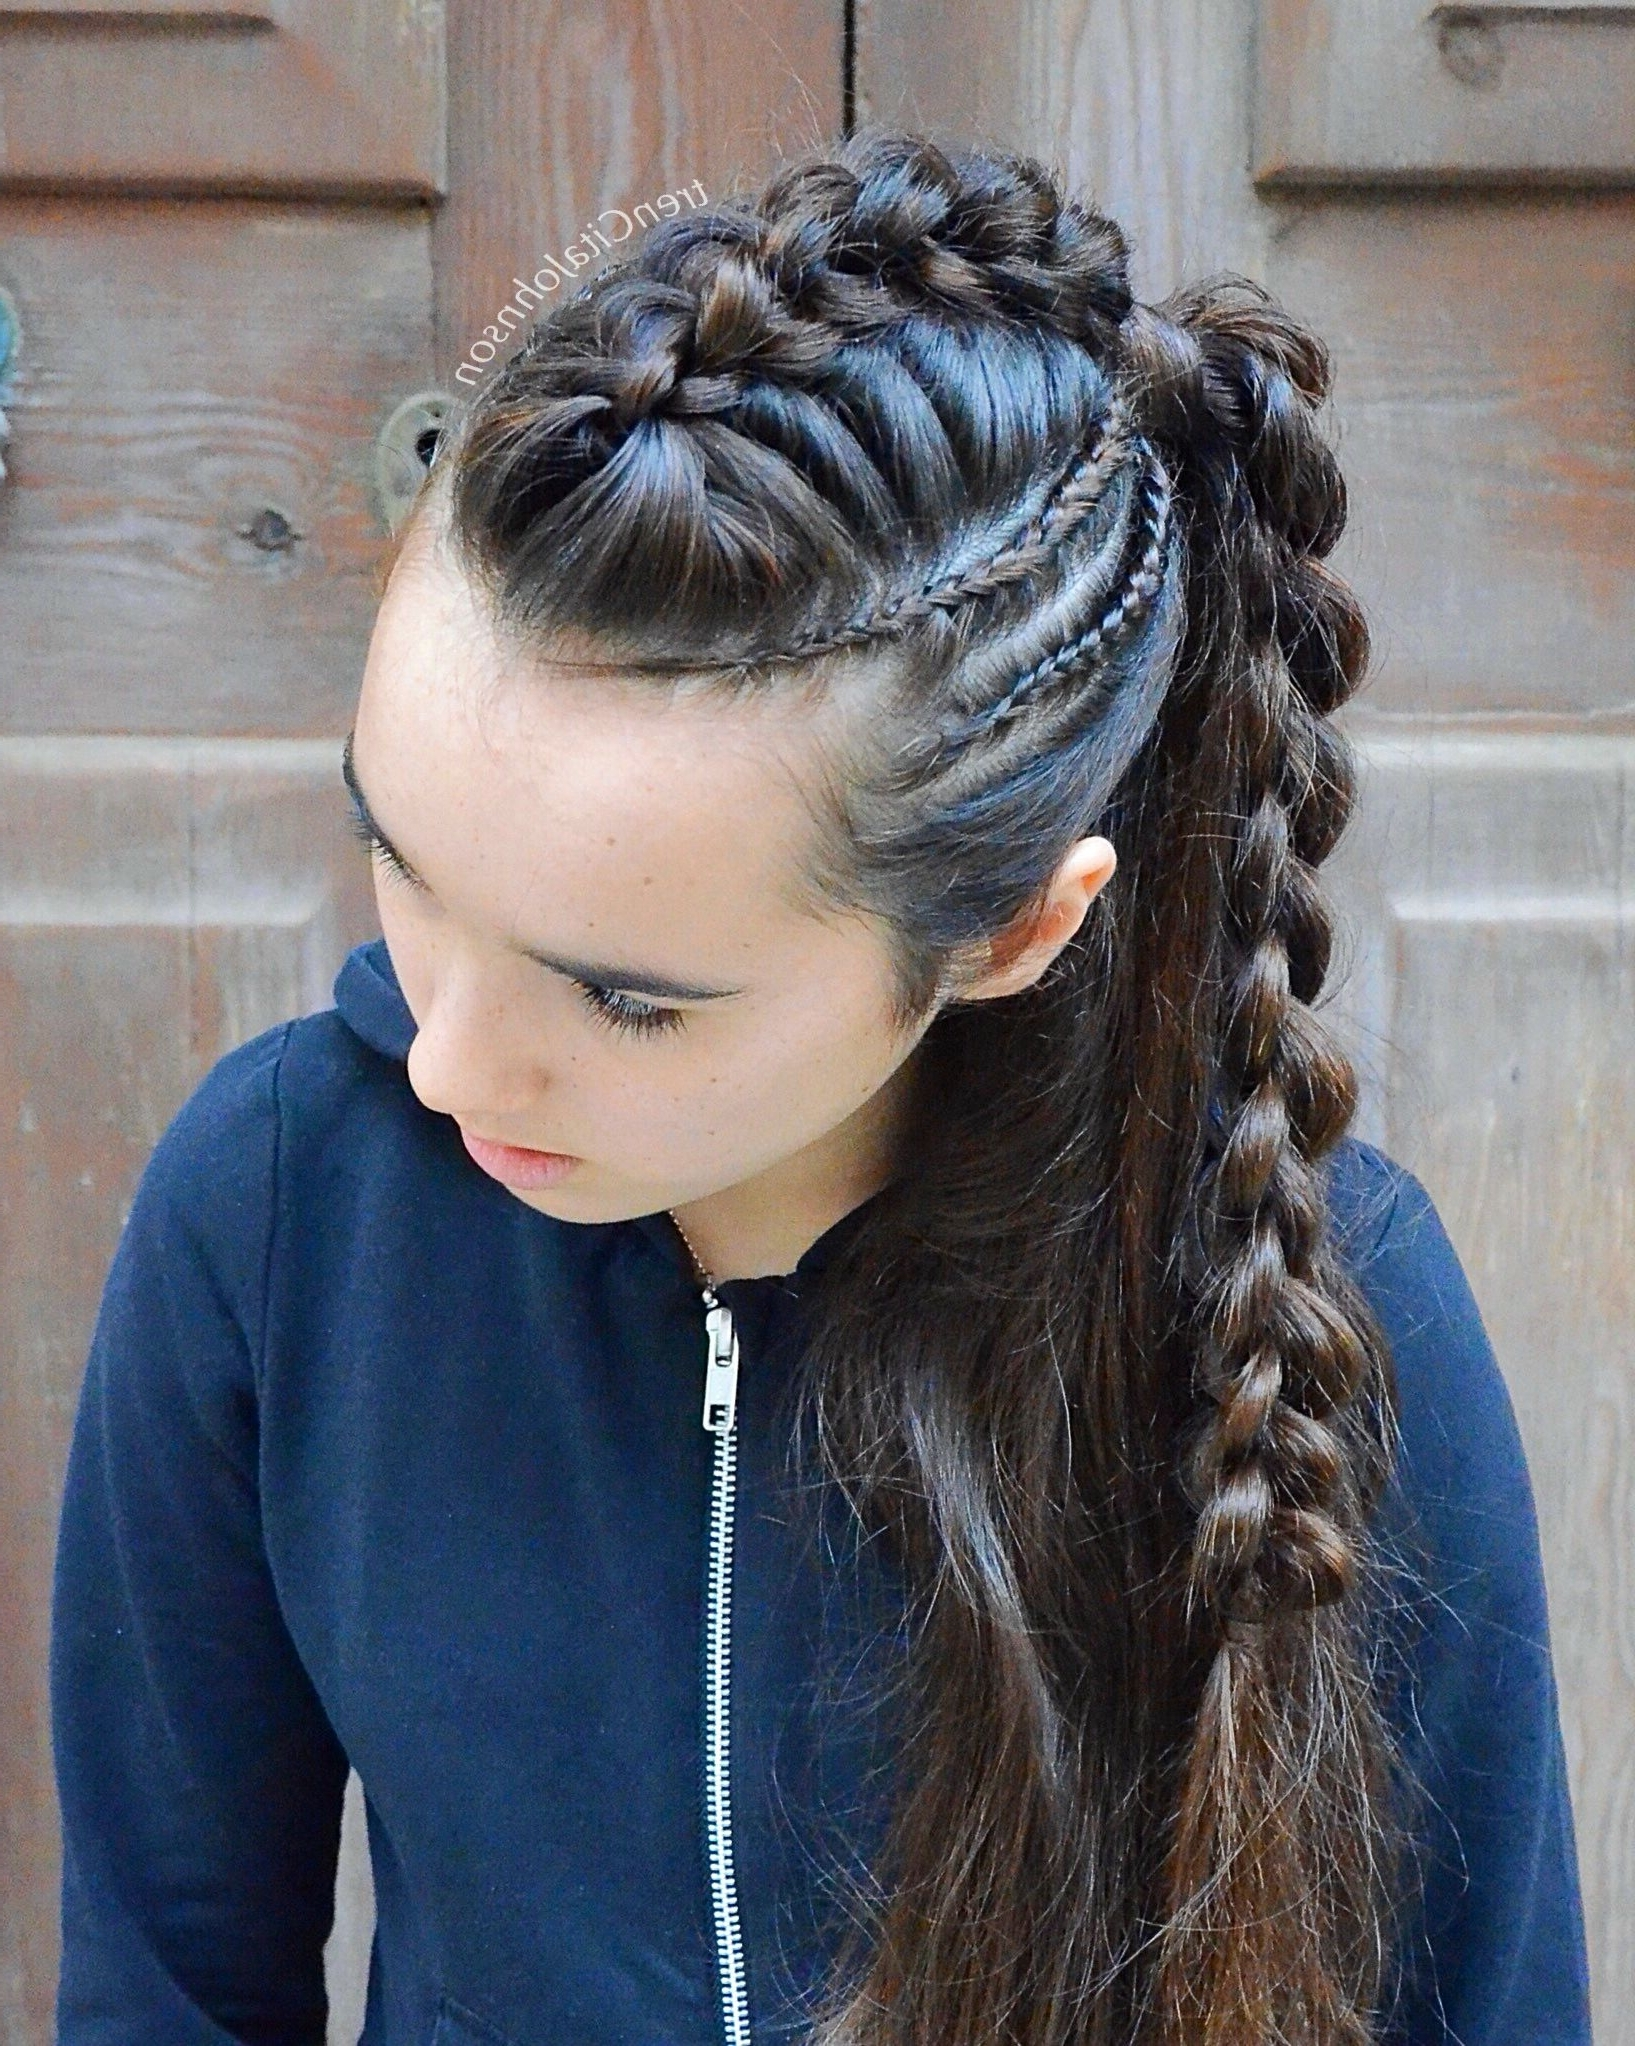 Widely Used Fantastical French Braid Ponytail Hairstyles With Regard To Ponytail With 3D Round Braid (View 20 of 20)